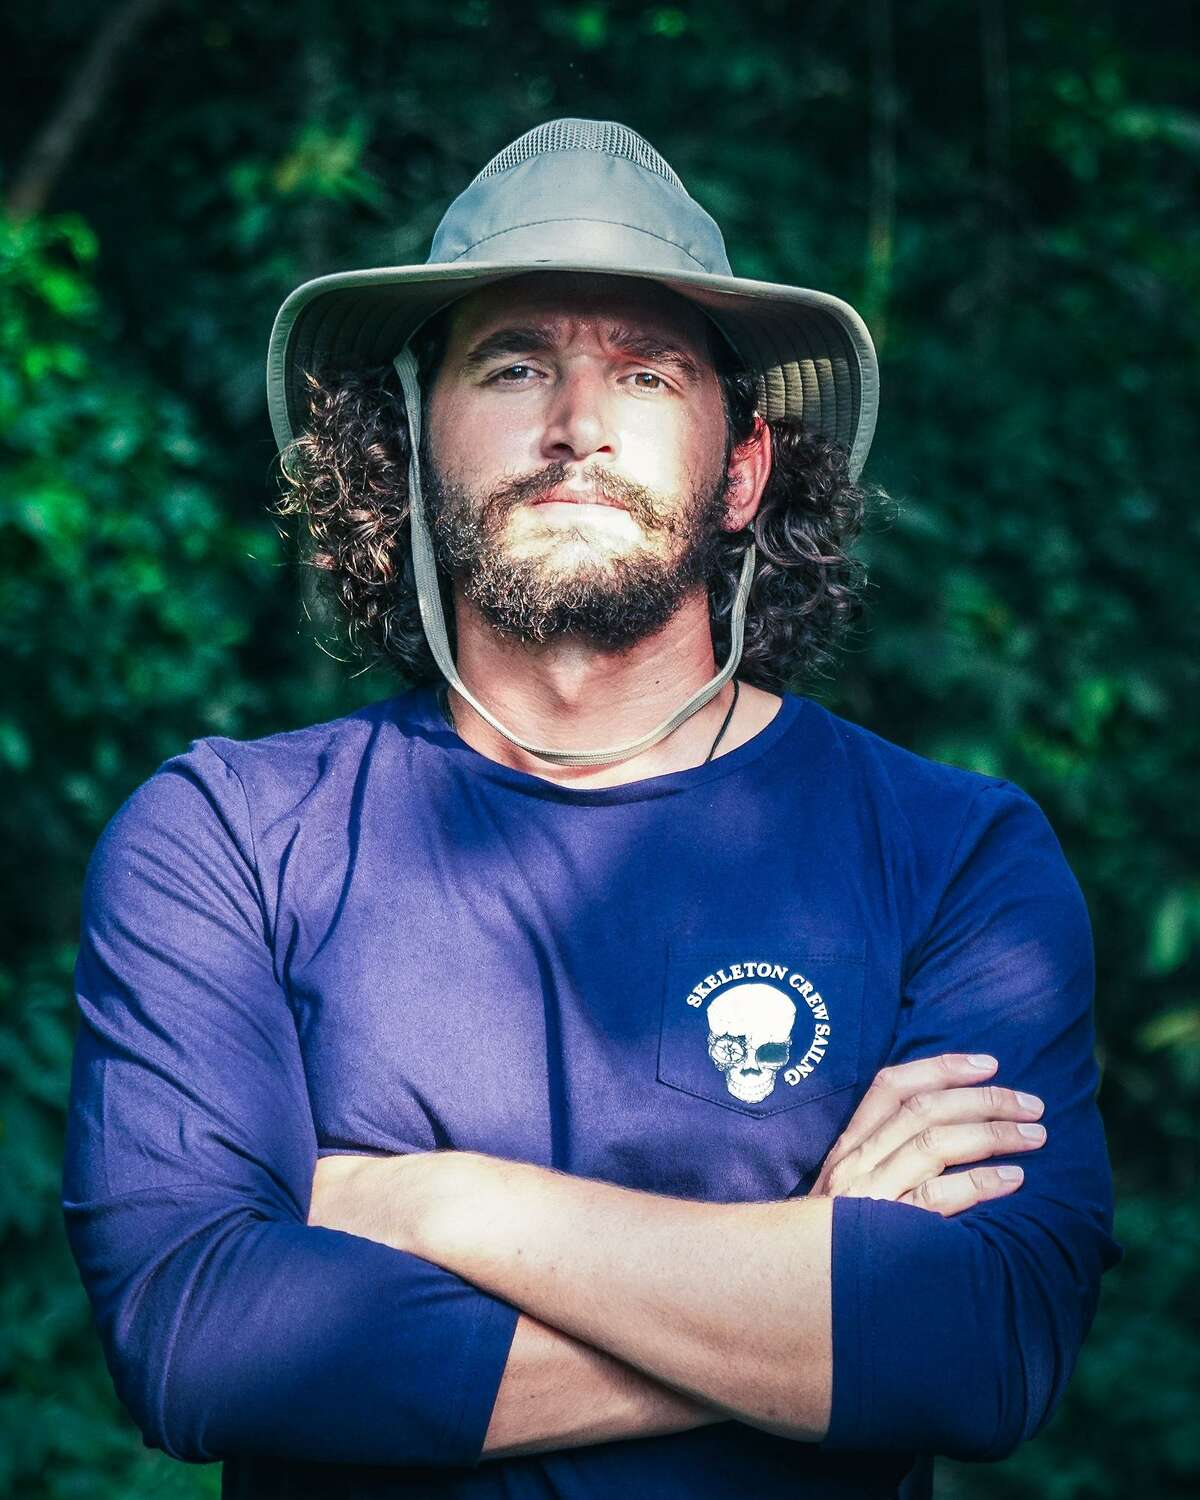 Taylor Grieger coped with suicidal thoughts as he tried to readjust to civilian life after his discharge from the Navy a year ago. To rediscover his sense of purpose, he and a friend, Stephen O'Shea, set sail in September on a voyage to circumnavigate Cape Horn. The Texas natives are using the journey to encourage the recovery of veterans struggling to adjust to life without the military.